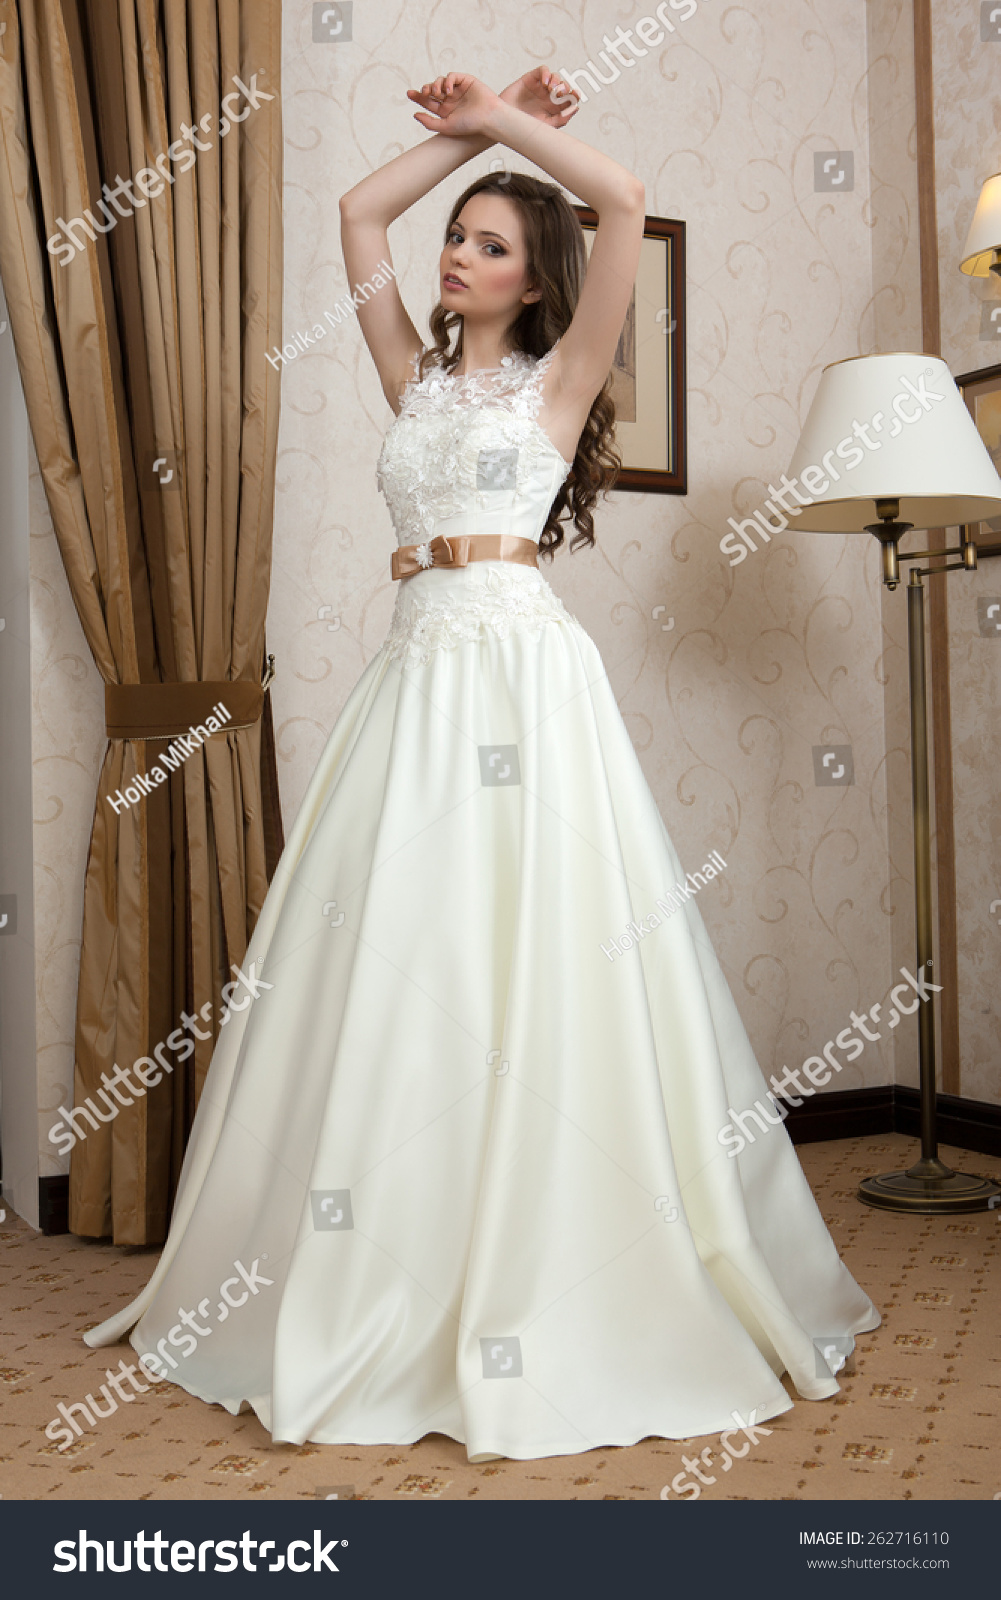 Wedding Dress Young Bride Tries On Stock Photo 262716110 - Shutterstock